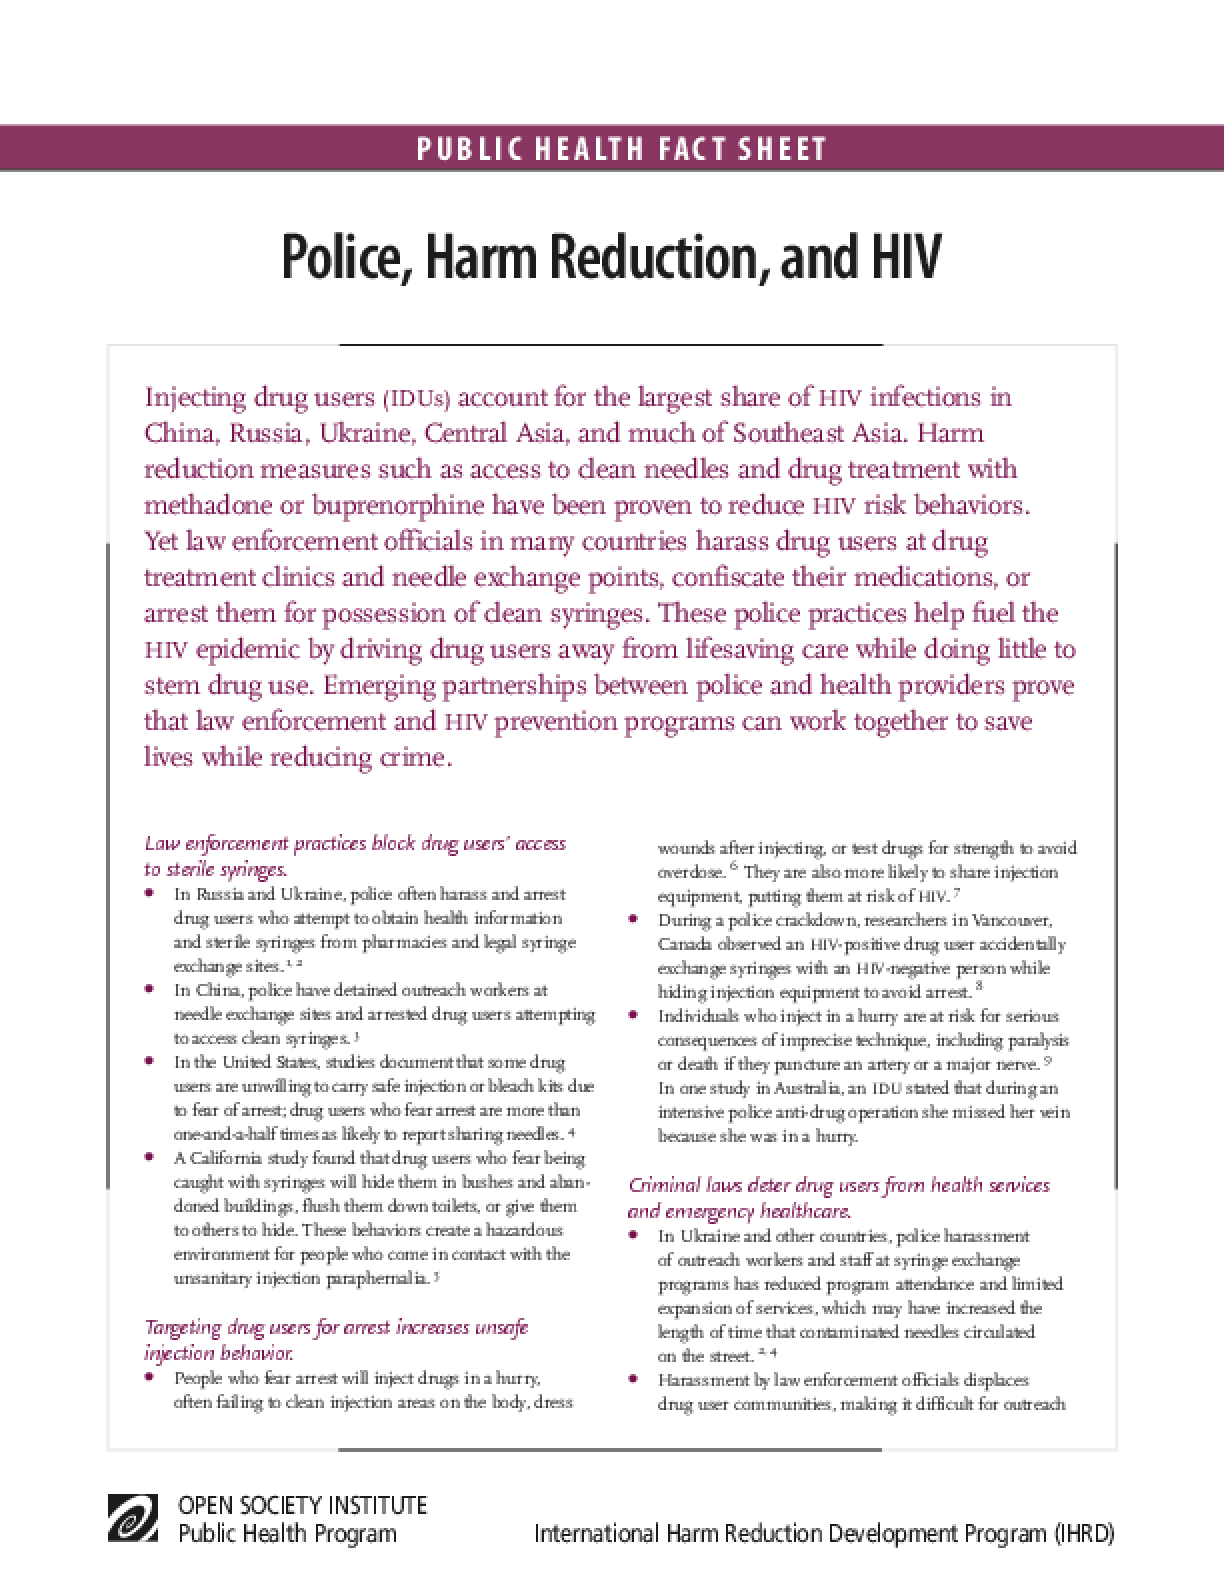 Police, Harm Reduction, and HIV